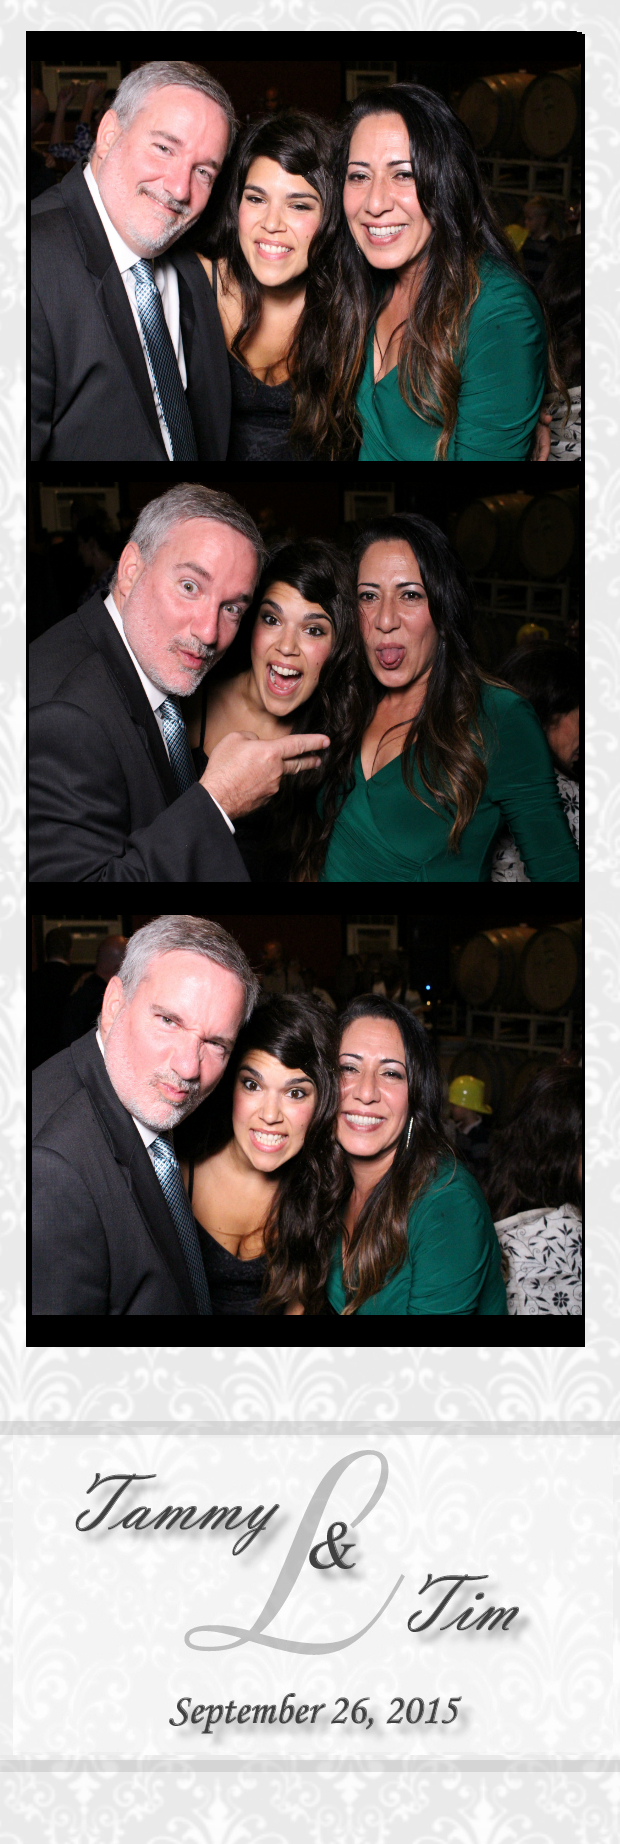 Guest House Events Photo Booth Strips T&T (25).jpg